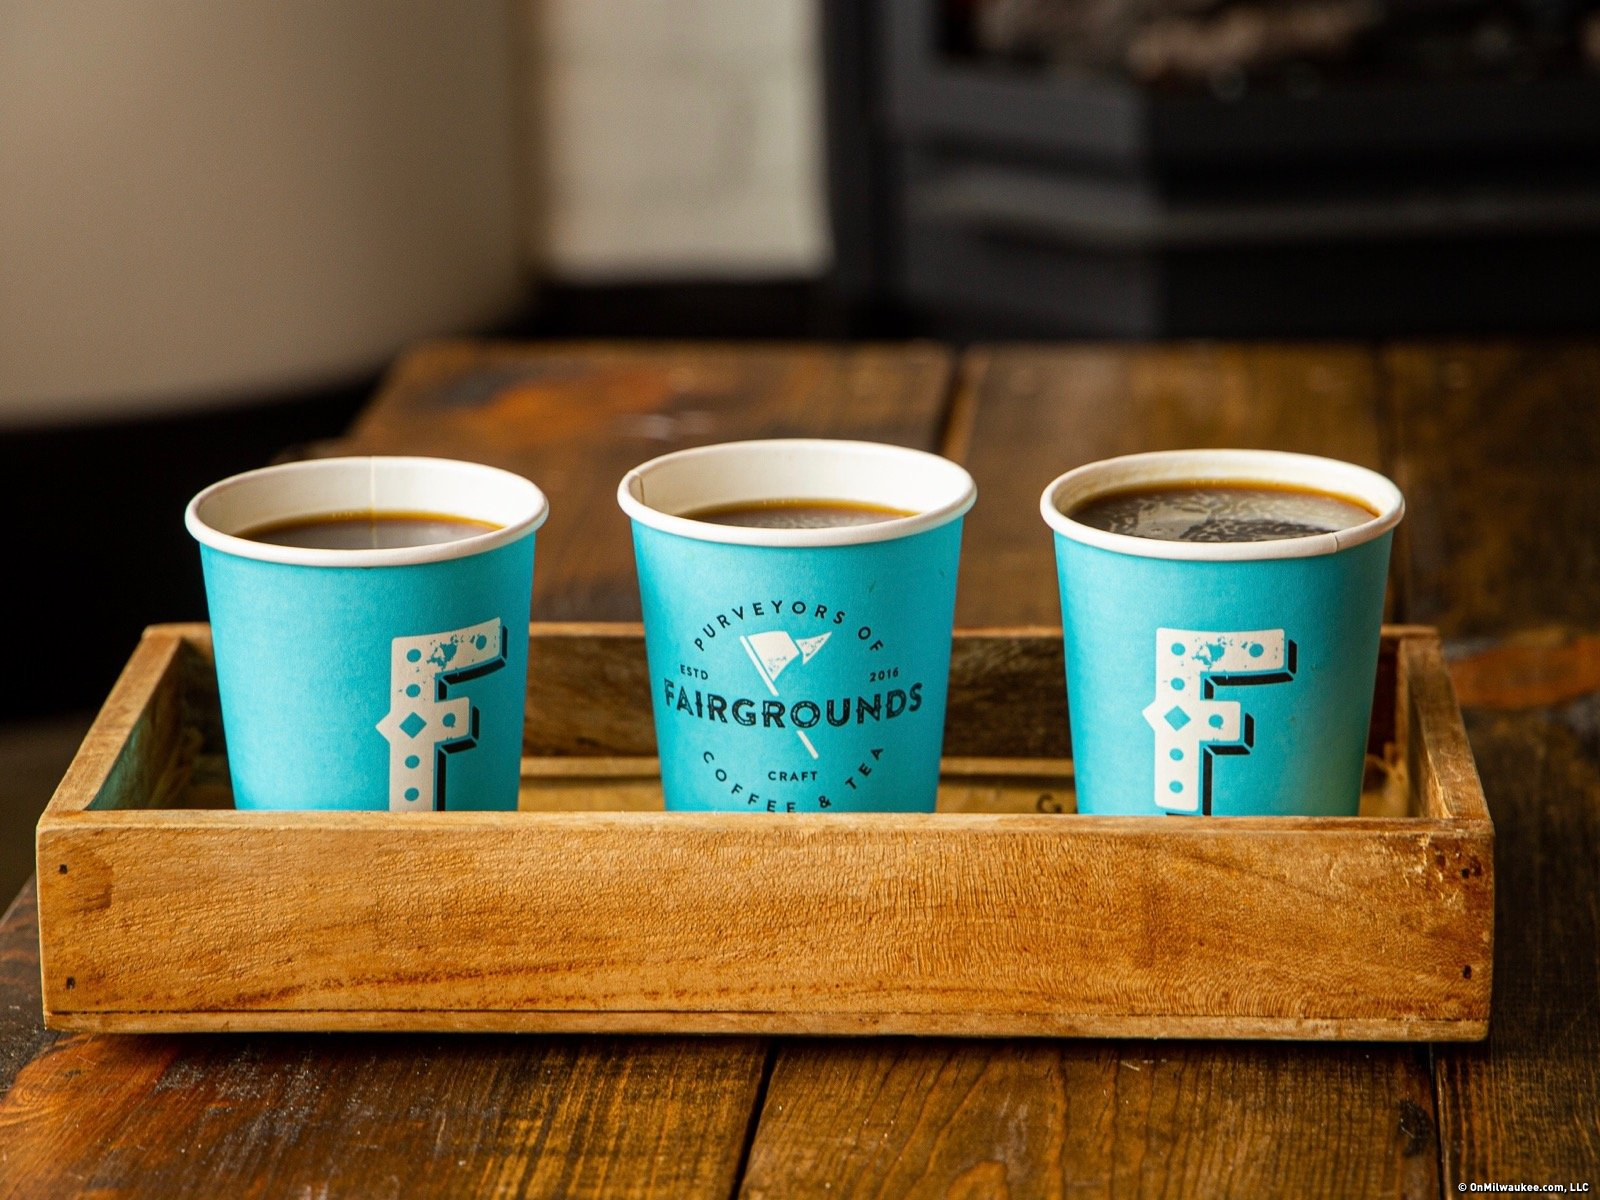 Fairgrounds Coffee Tea, which opens Oct. 23, aspires to be a Milwaukee staple